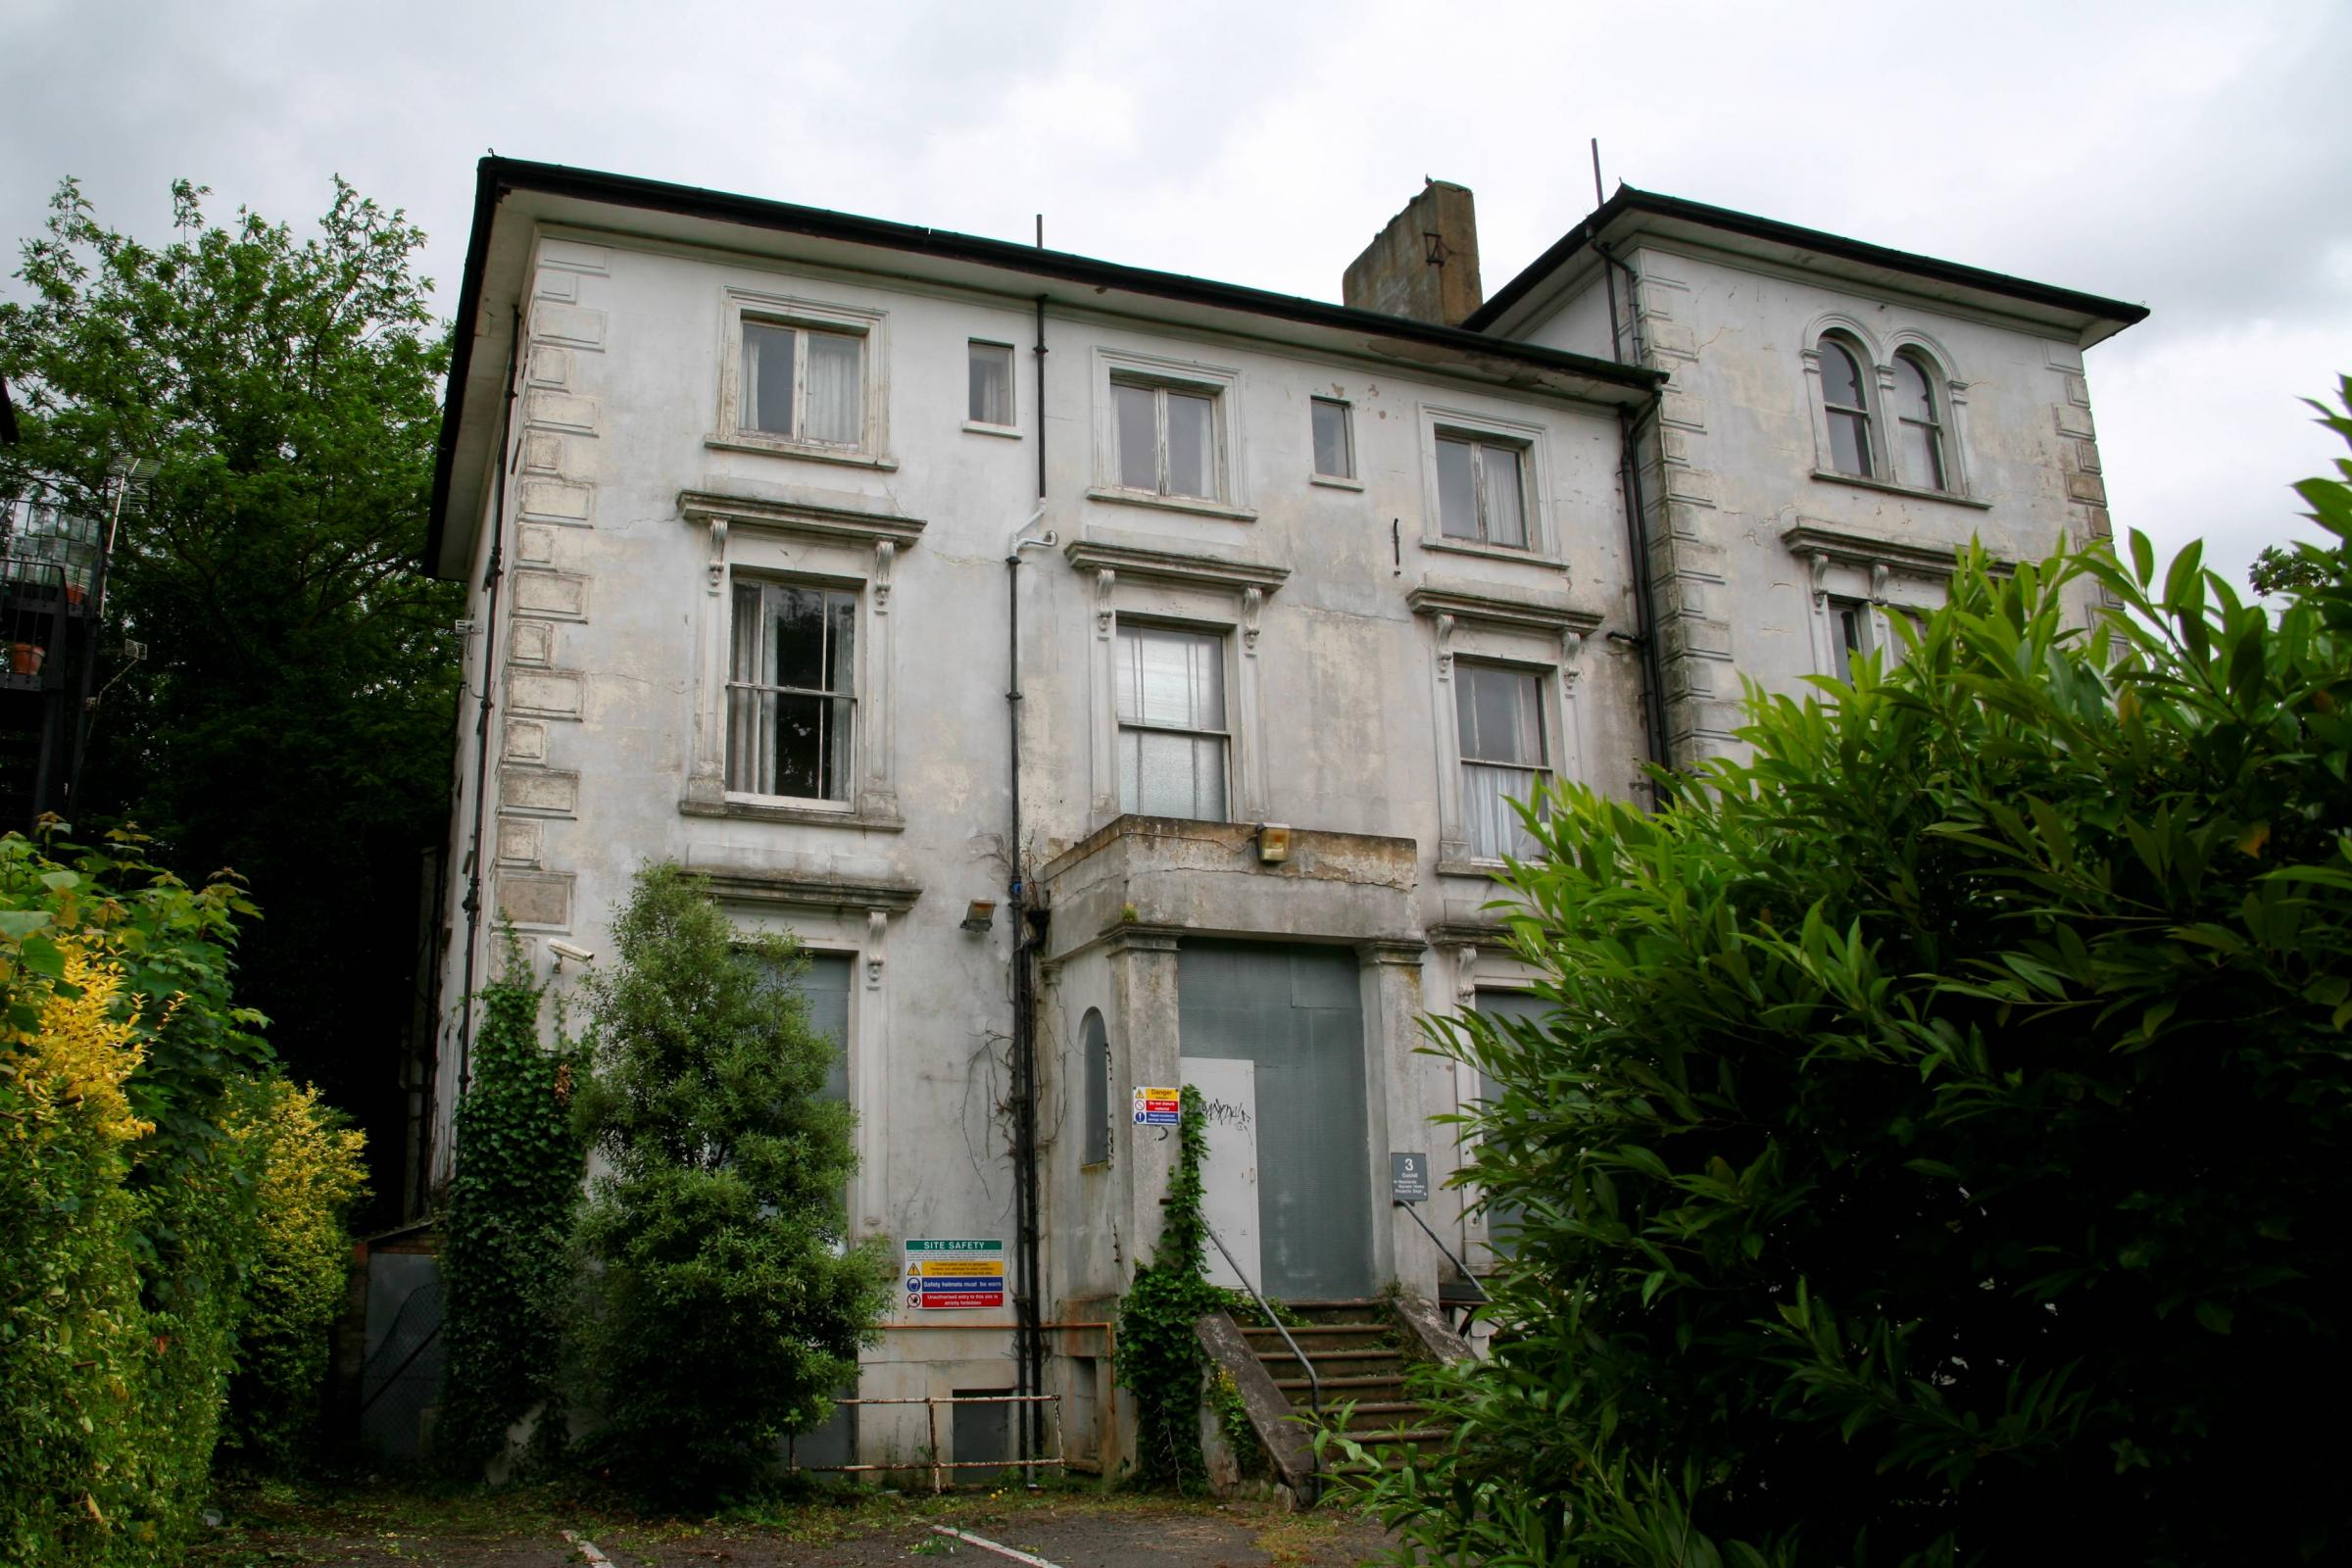 Spooky old nurses' home in Surbiton to be brought back to life?